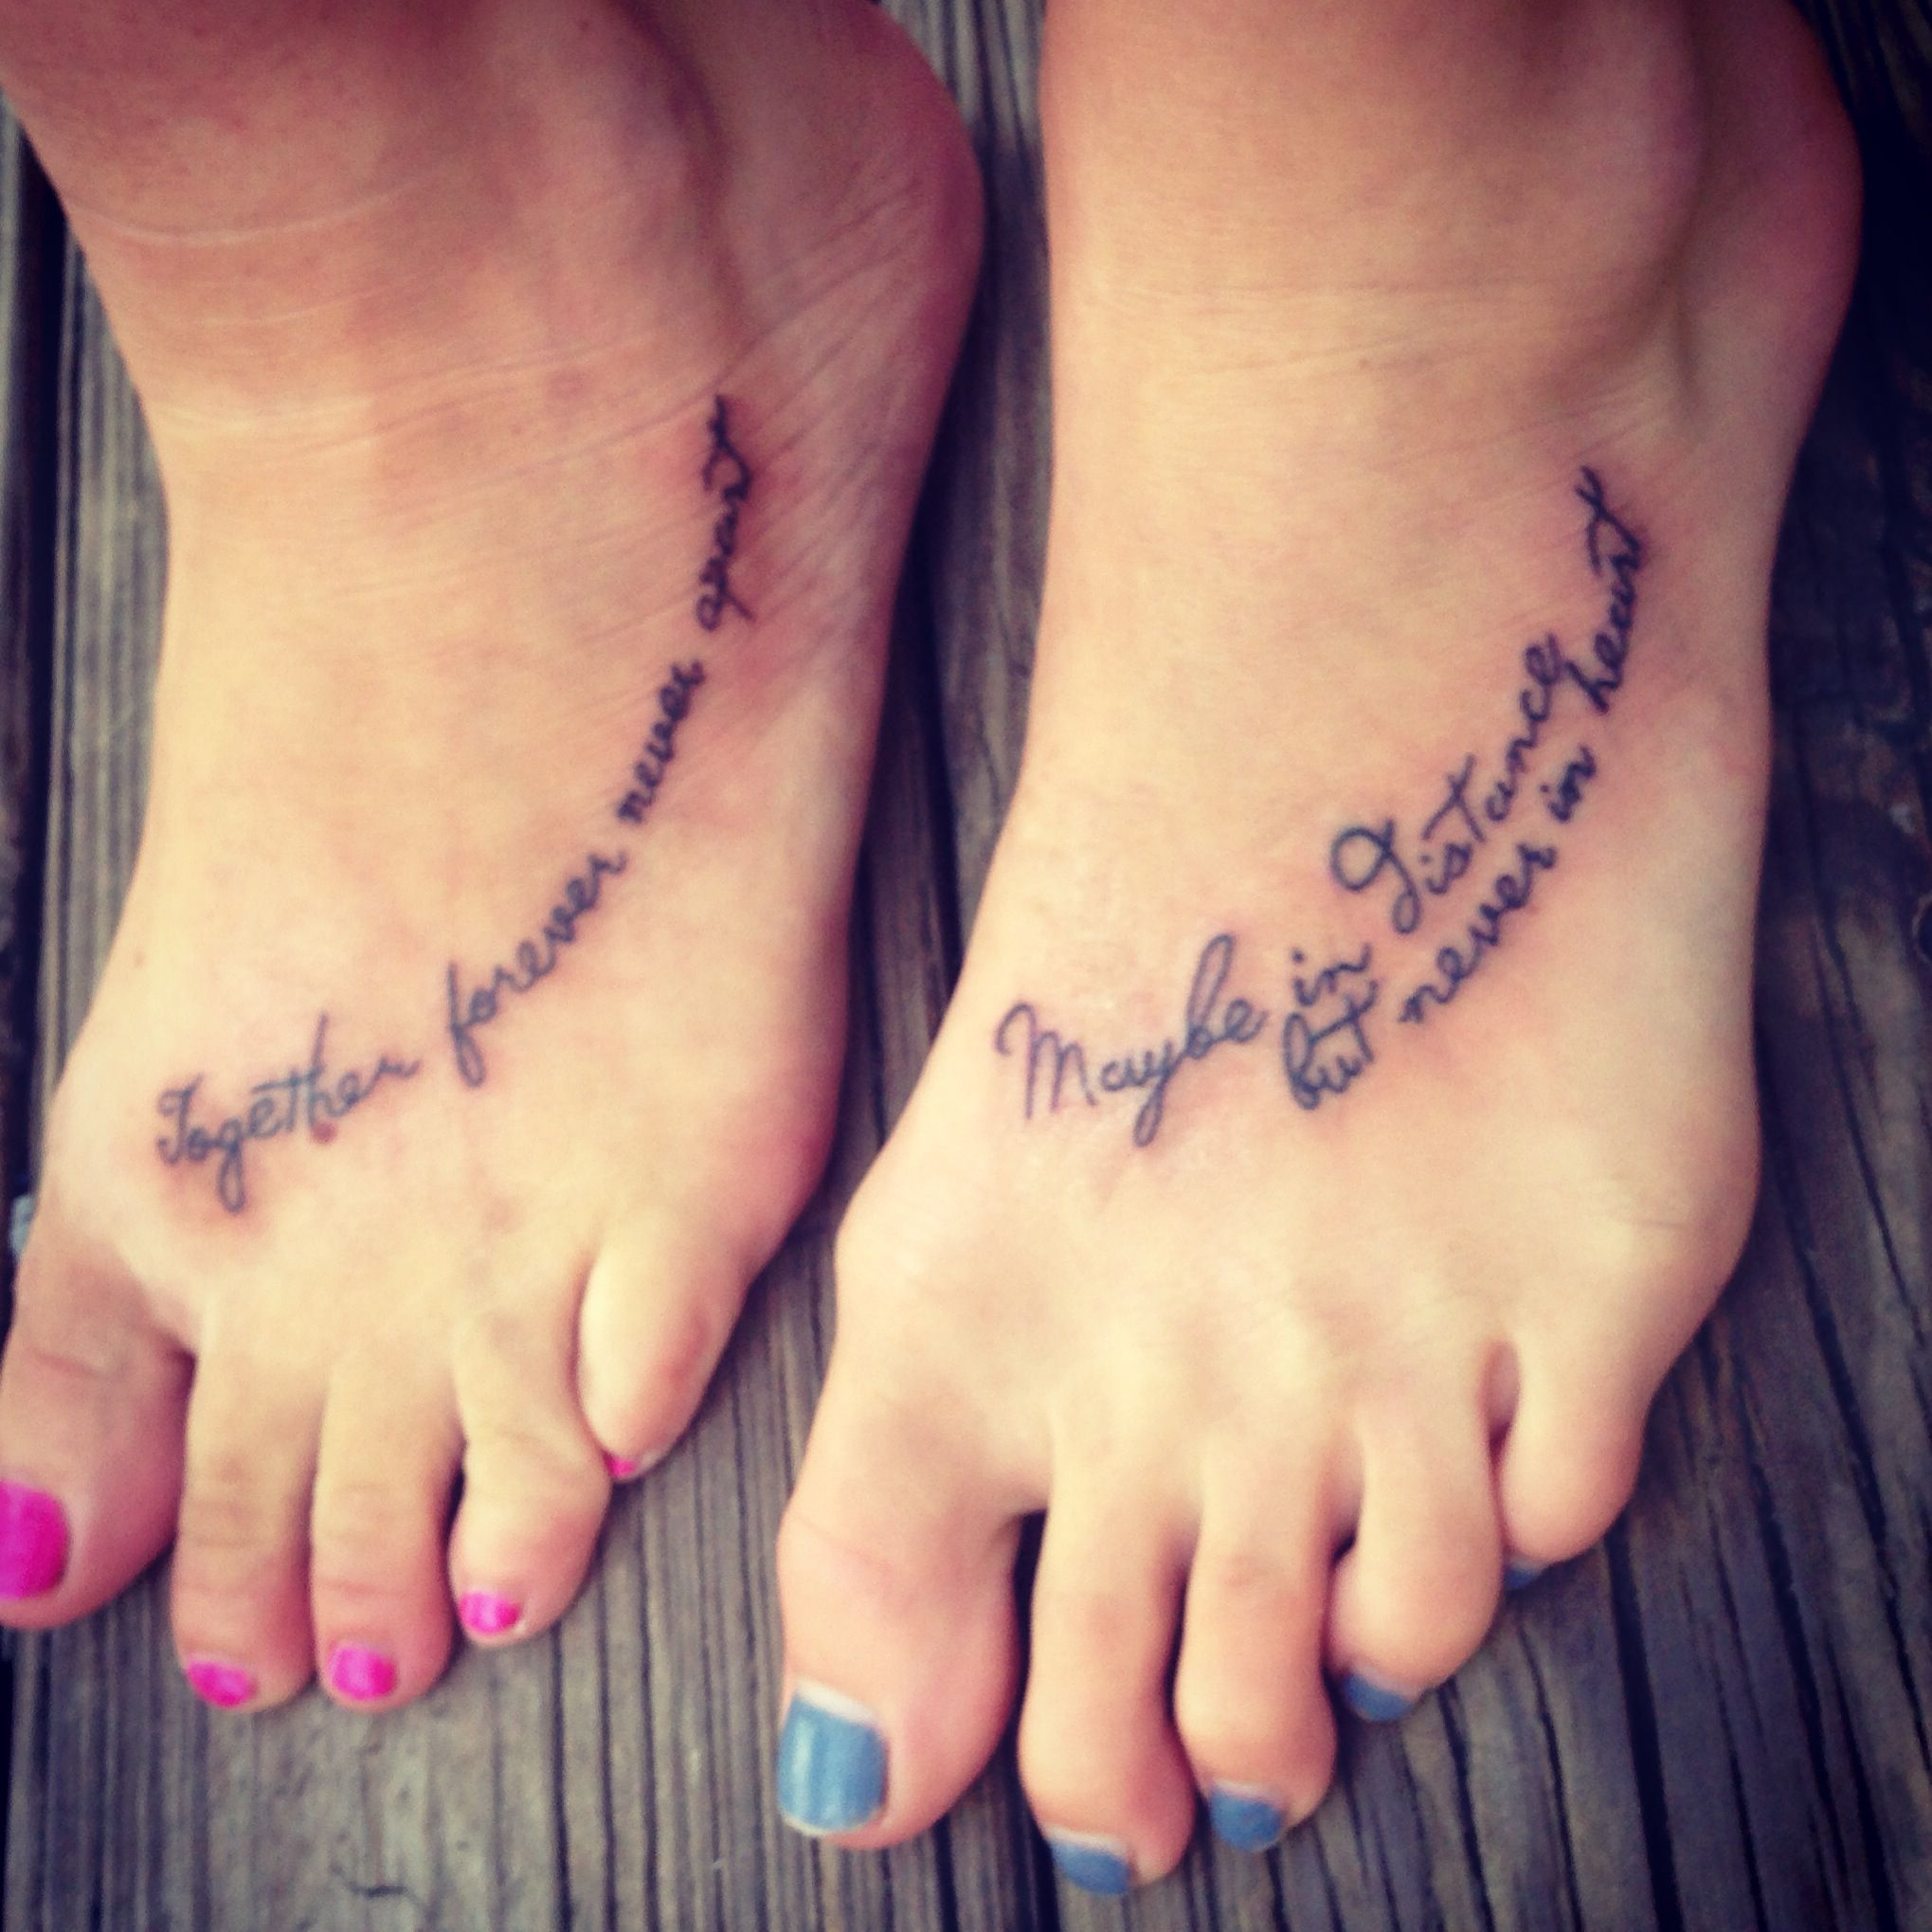 Mom and daughter tattoo-together forever never apart, maybe in ...